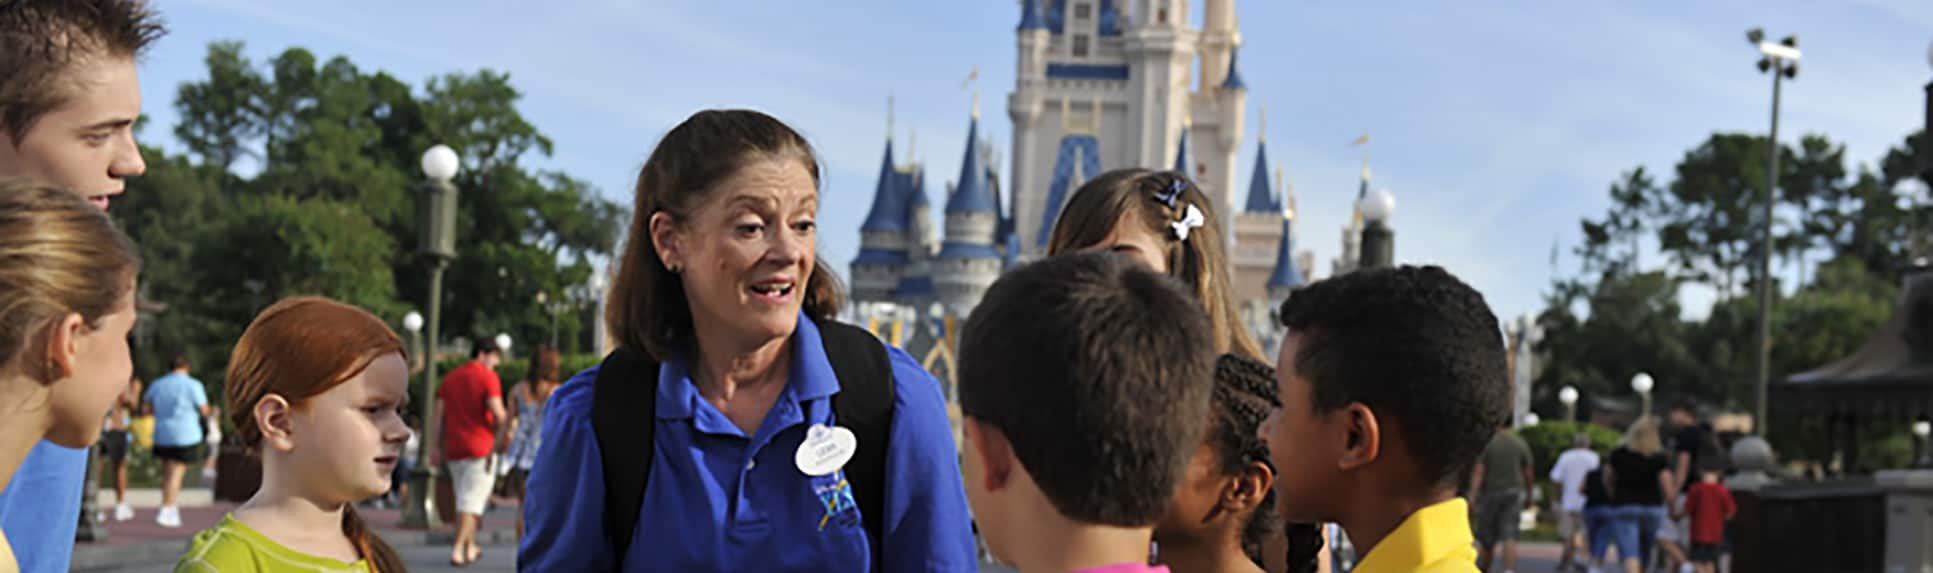 A Cast Member with children